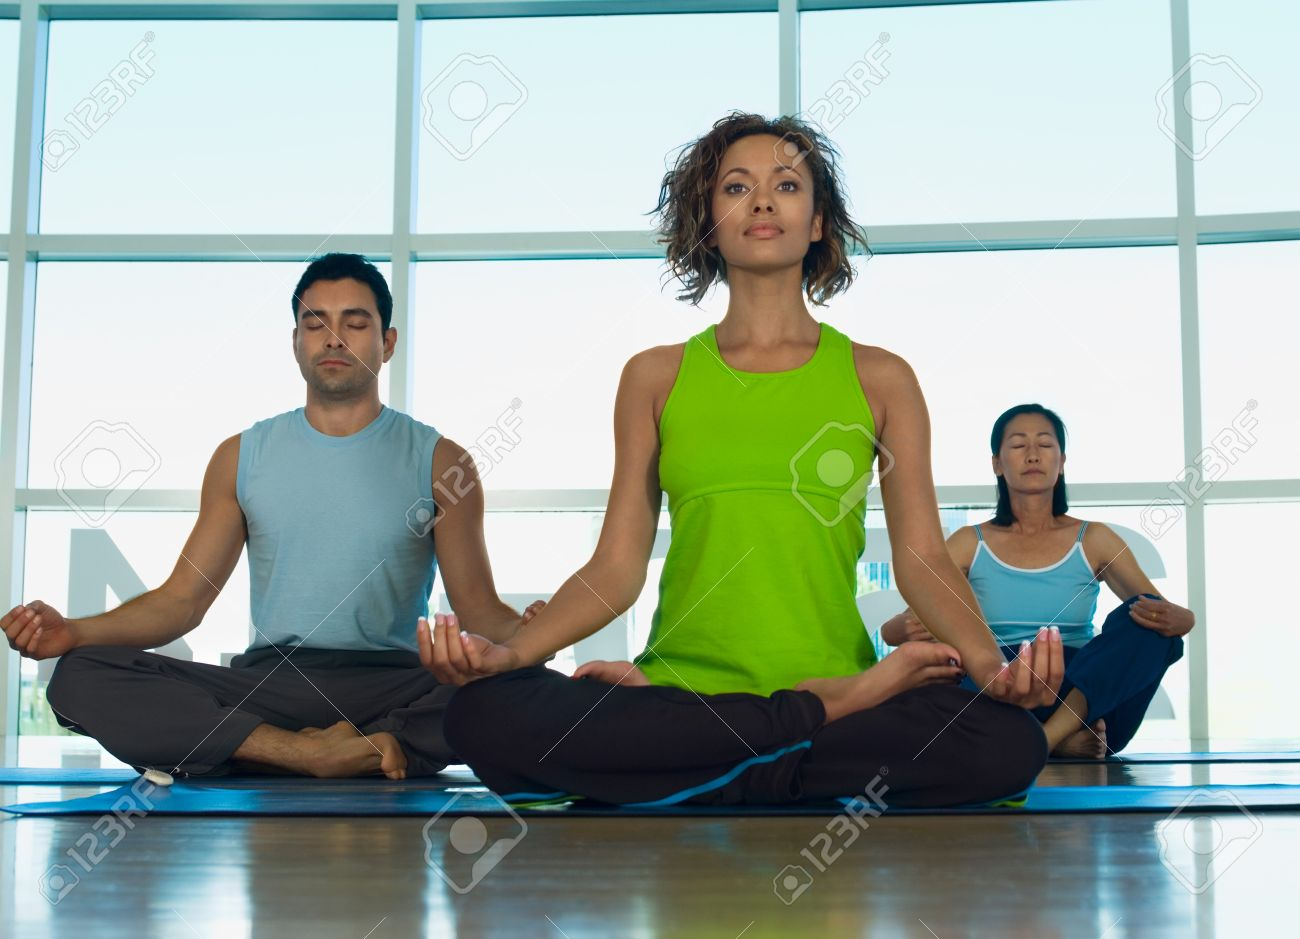 Three People Doing Yoga Indoors Stock Photo Picture And Royalty Free Image Image 21009600